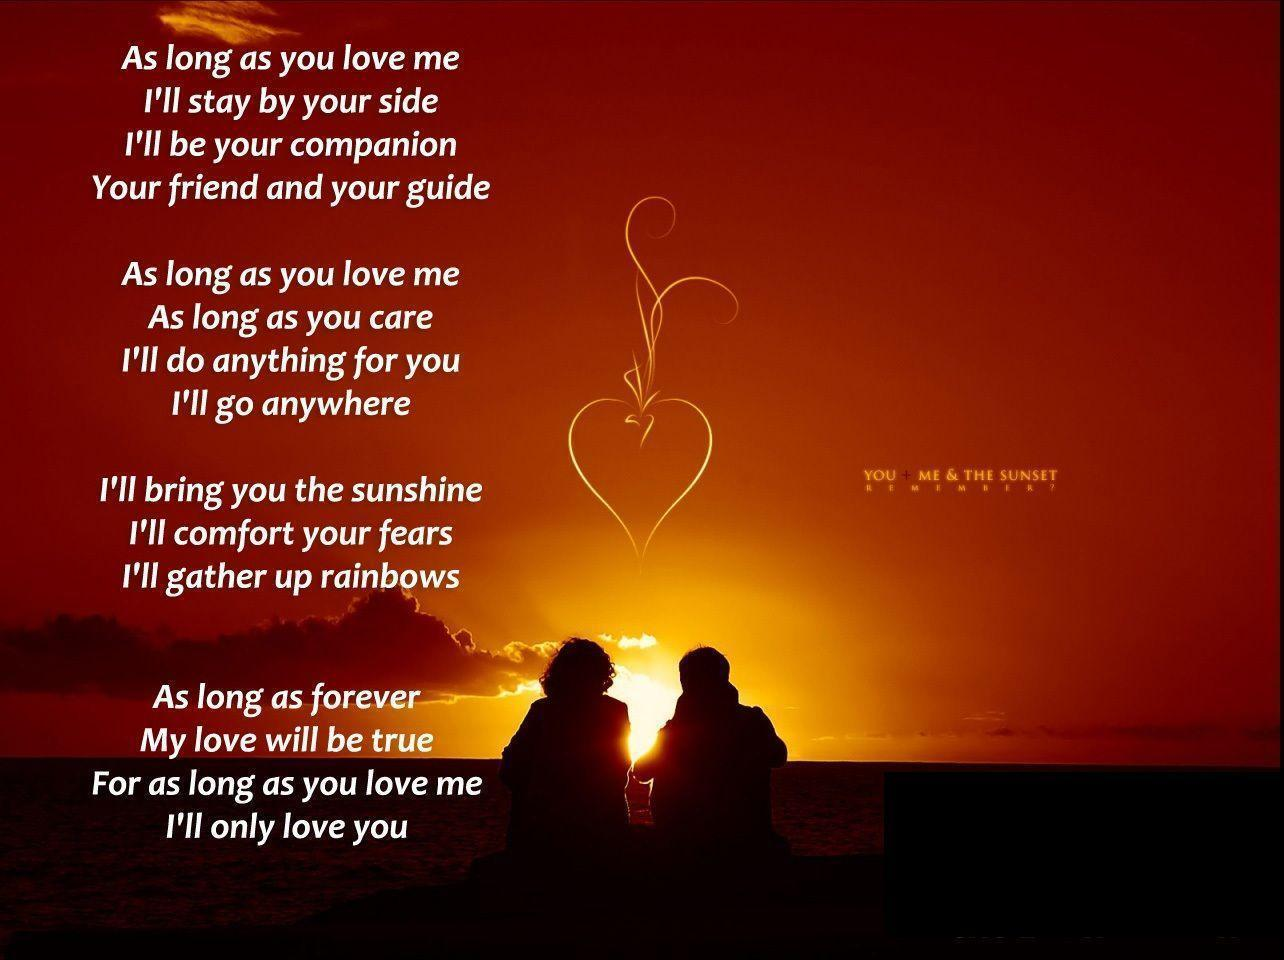 Love Poem Hd Wallpaper : Love Poems Wallpapers - Wallpaper cave